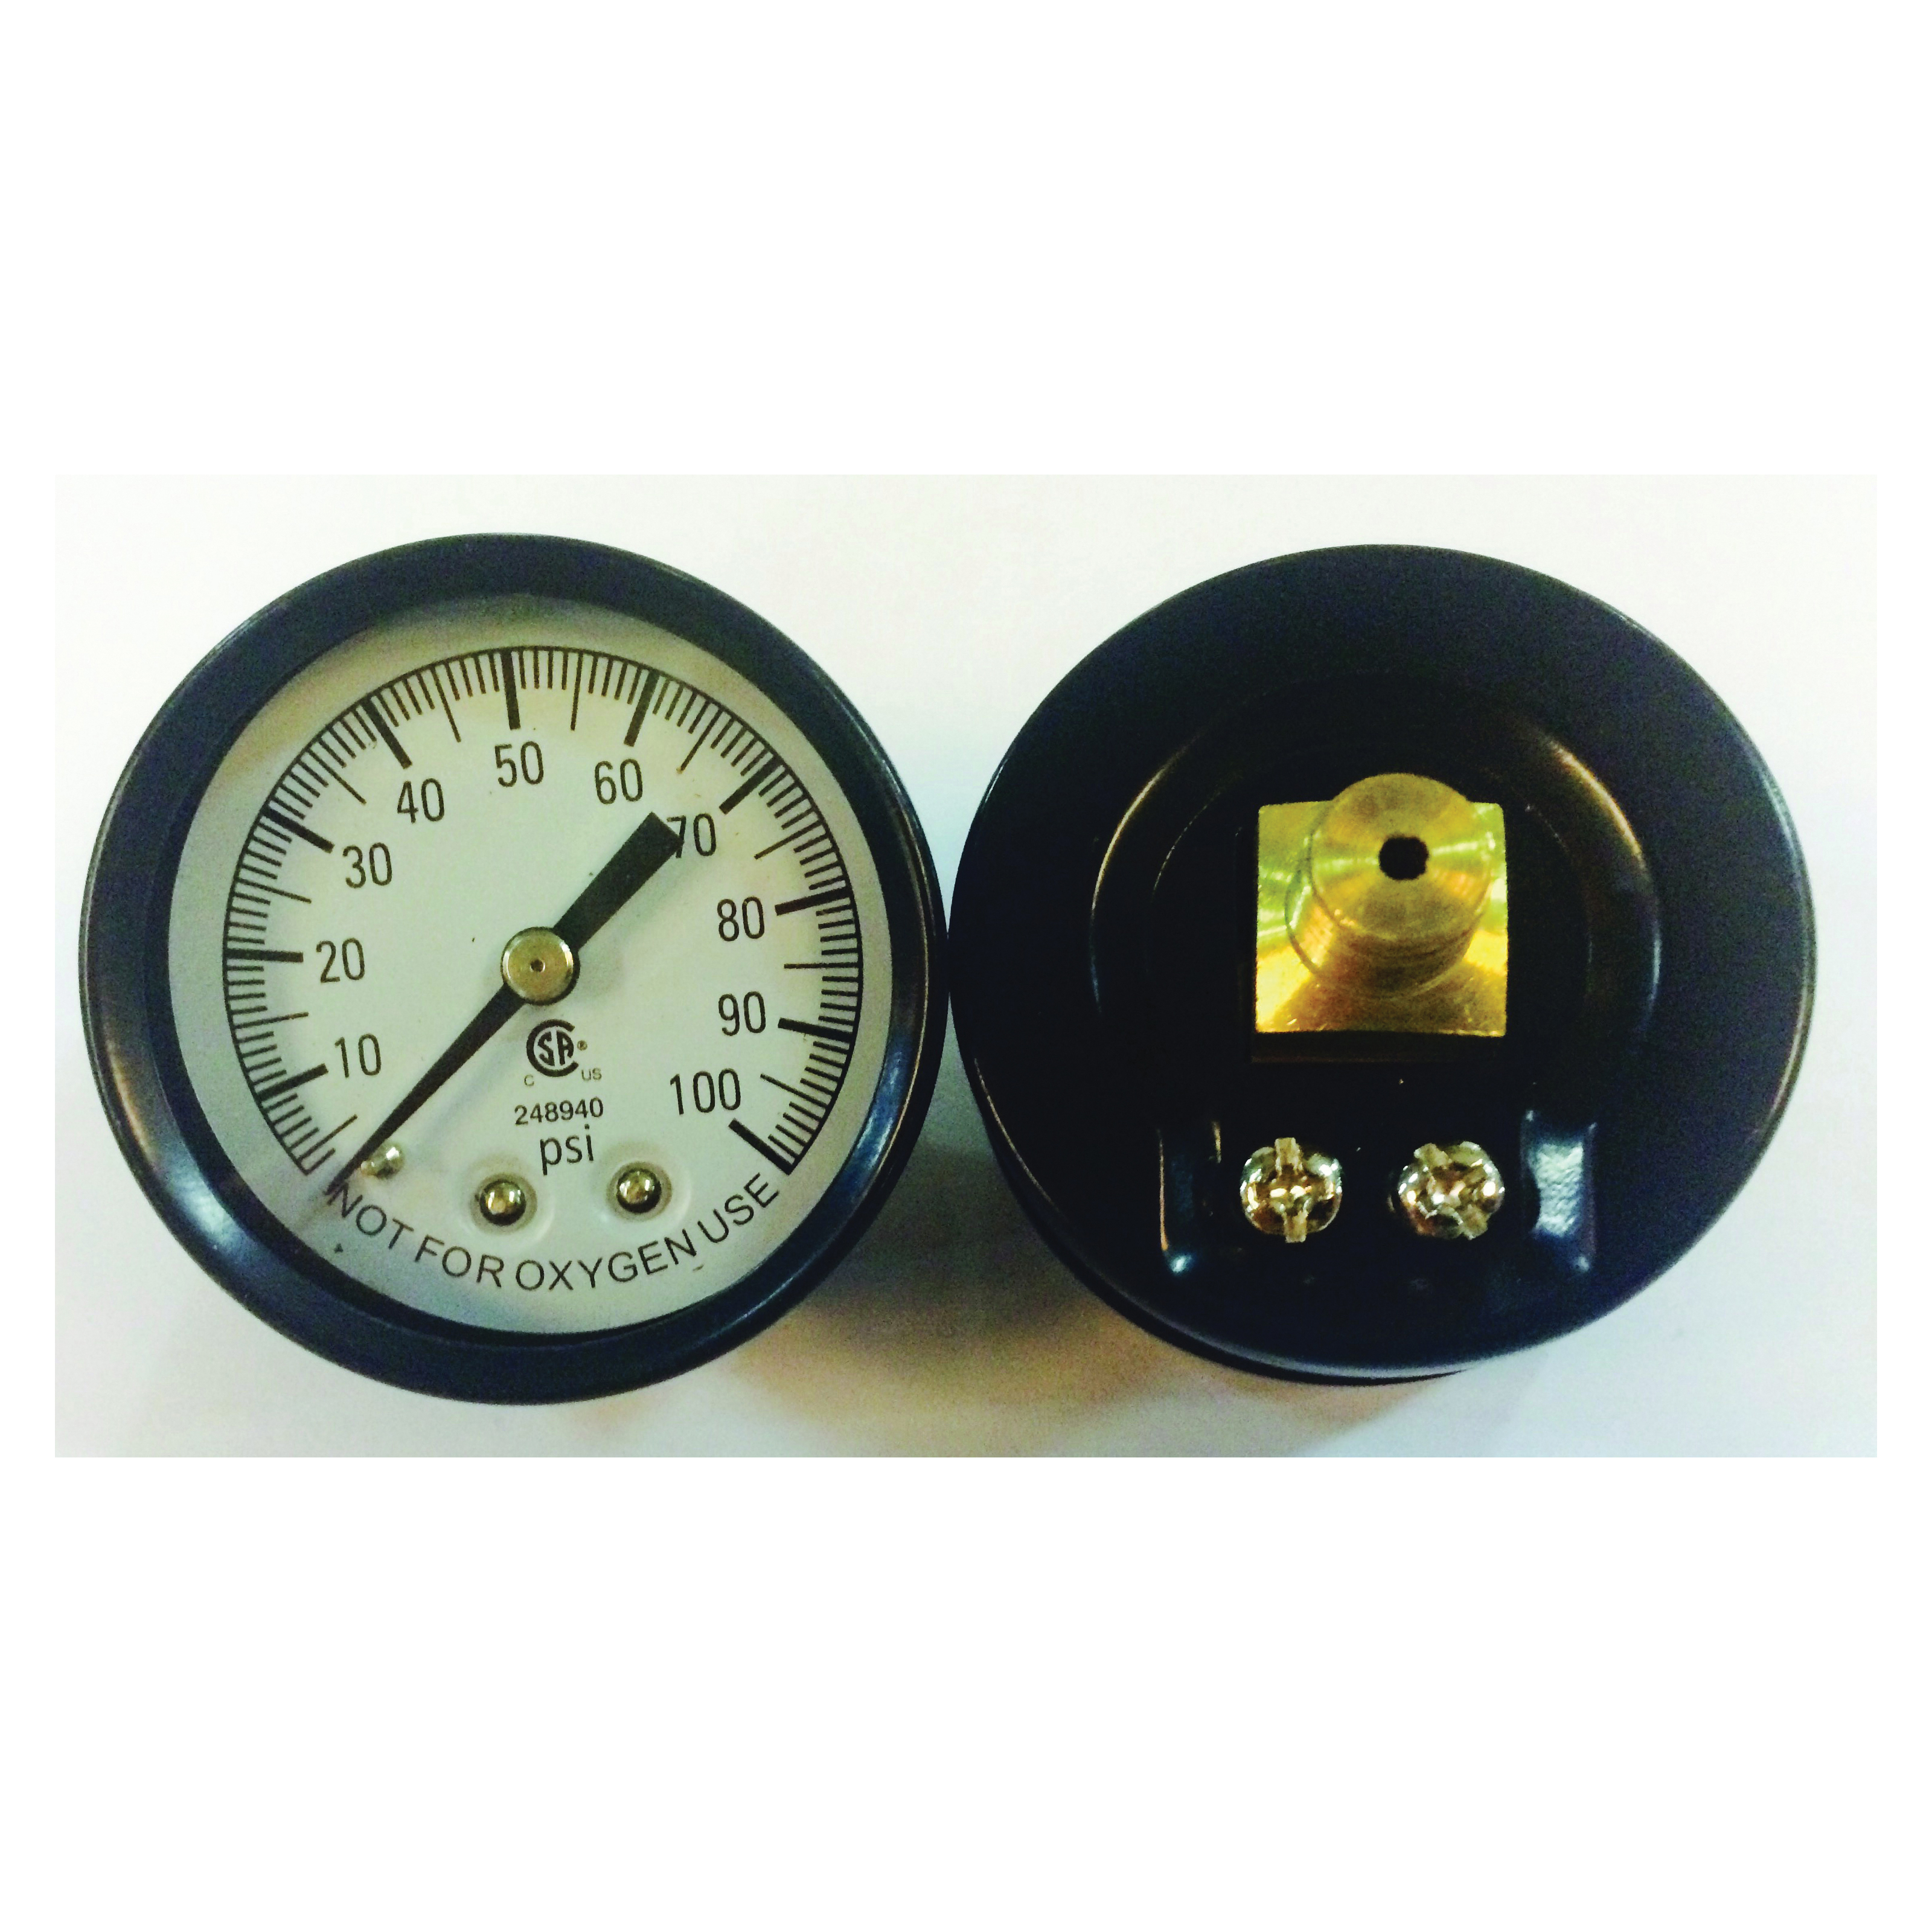 Picture of Simmons 1307 Pressure Gauge, 1/8 in Connection, MPT, 2 in Dial, Steel Gauge Case, 0 to 100 lb